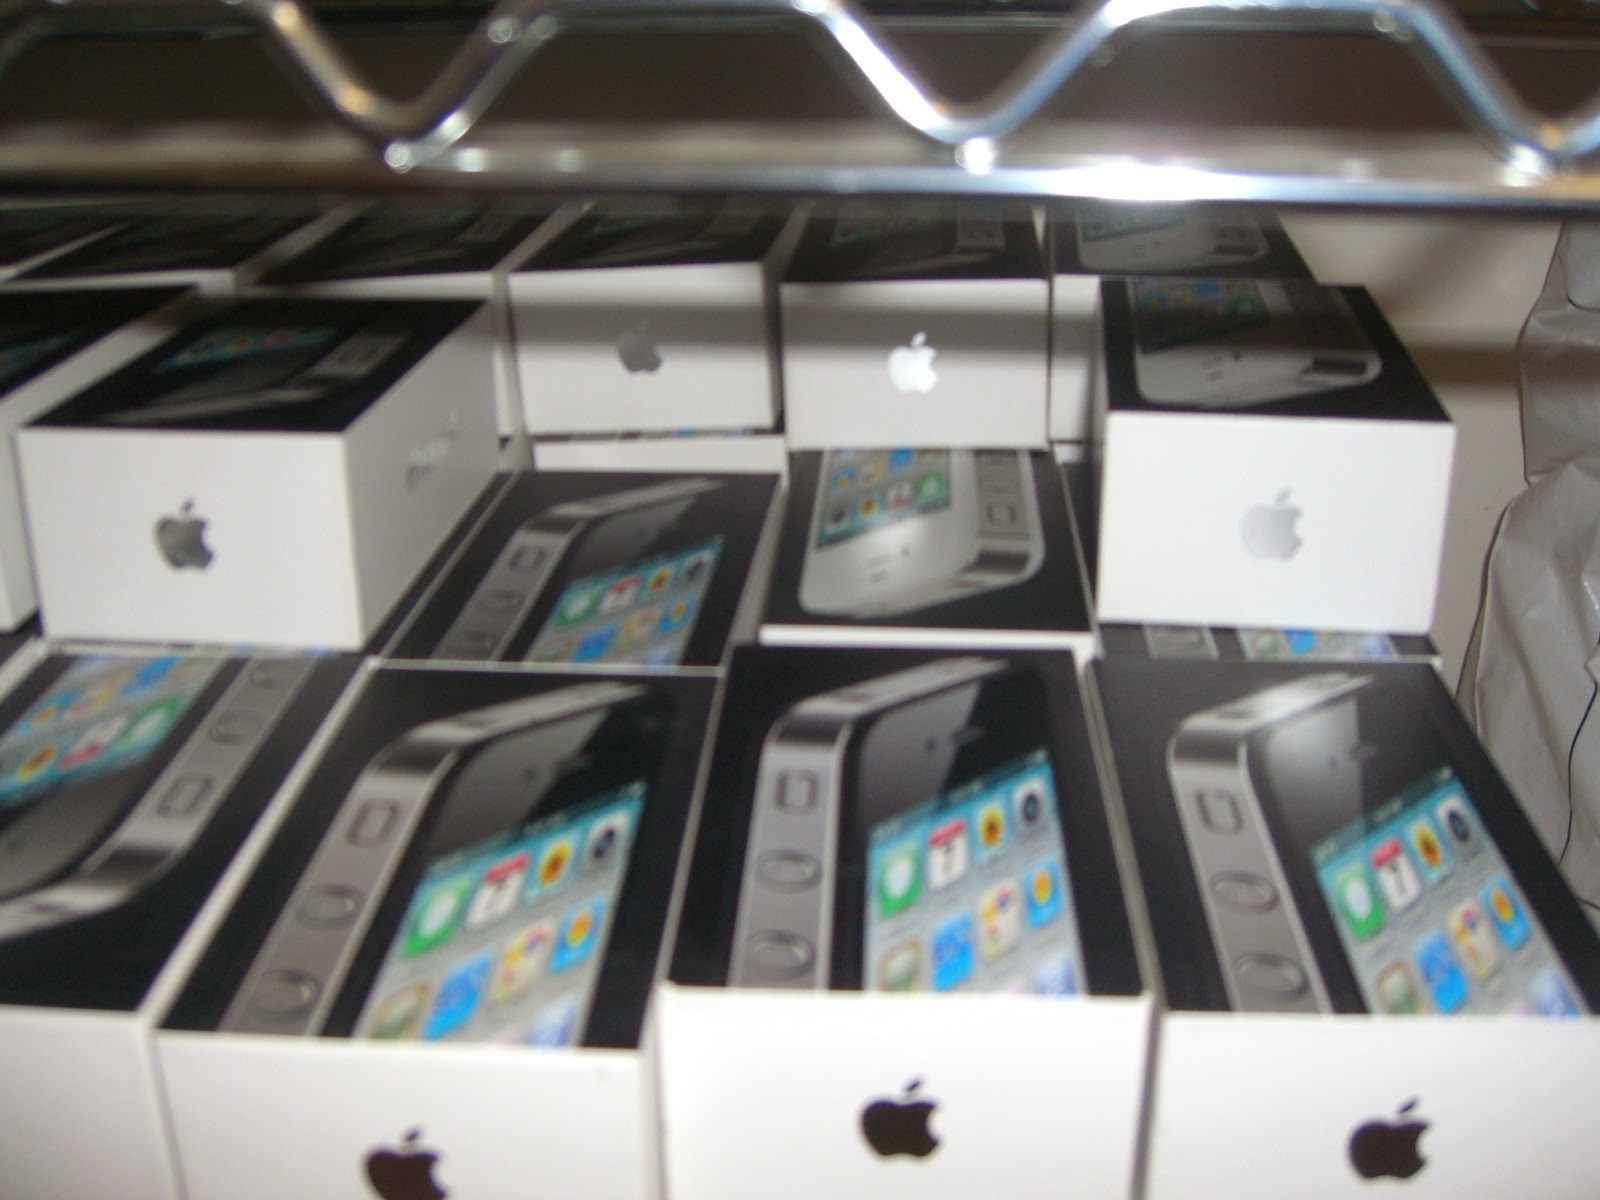 iPhone 5C, used, HSO, wholesale supplier, New York, Apple